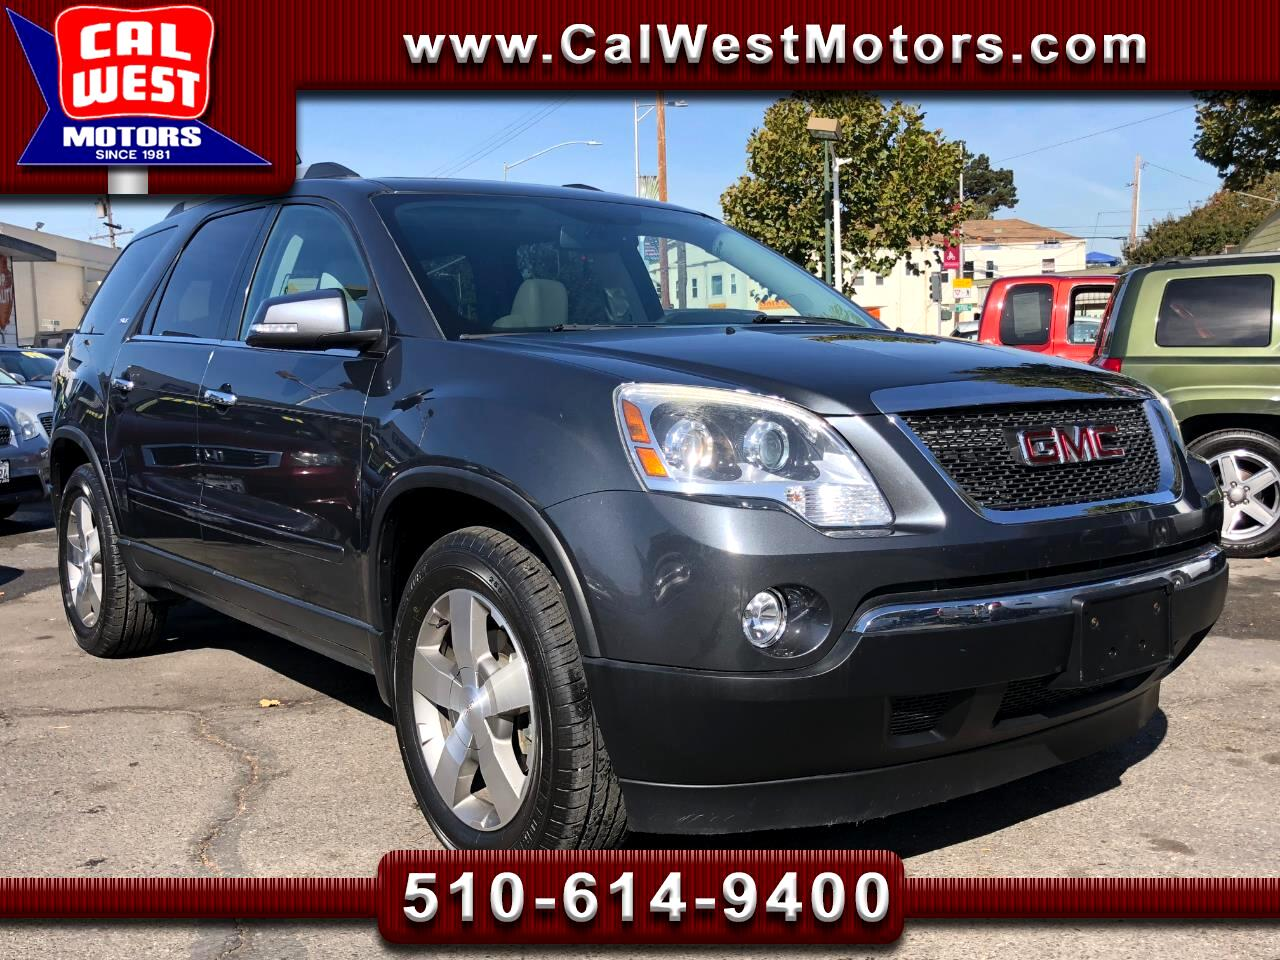 2011 GMC Acadia SLT 3Rows Blu2th BUCam 1Owner LowMiles ExMtnce